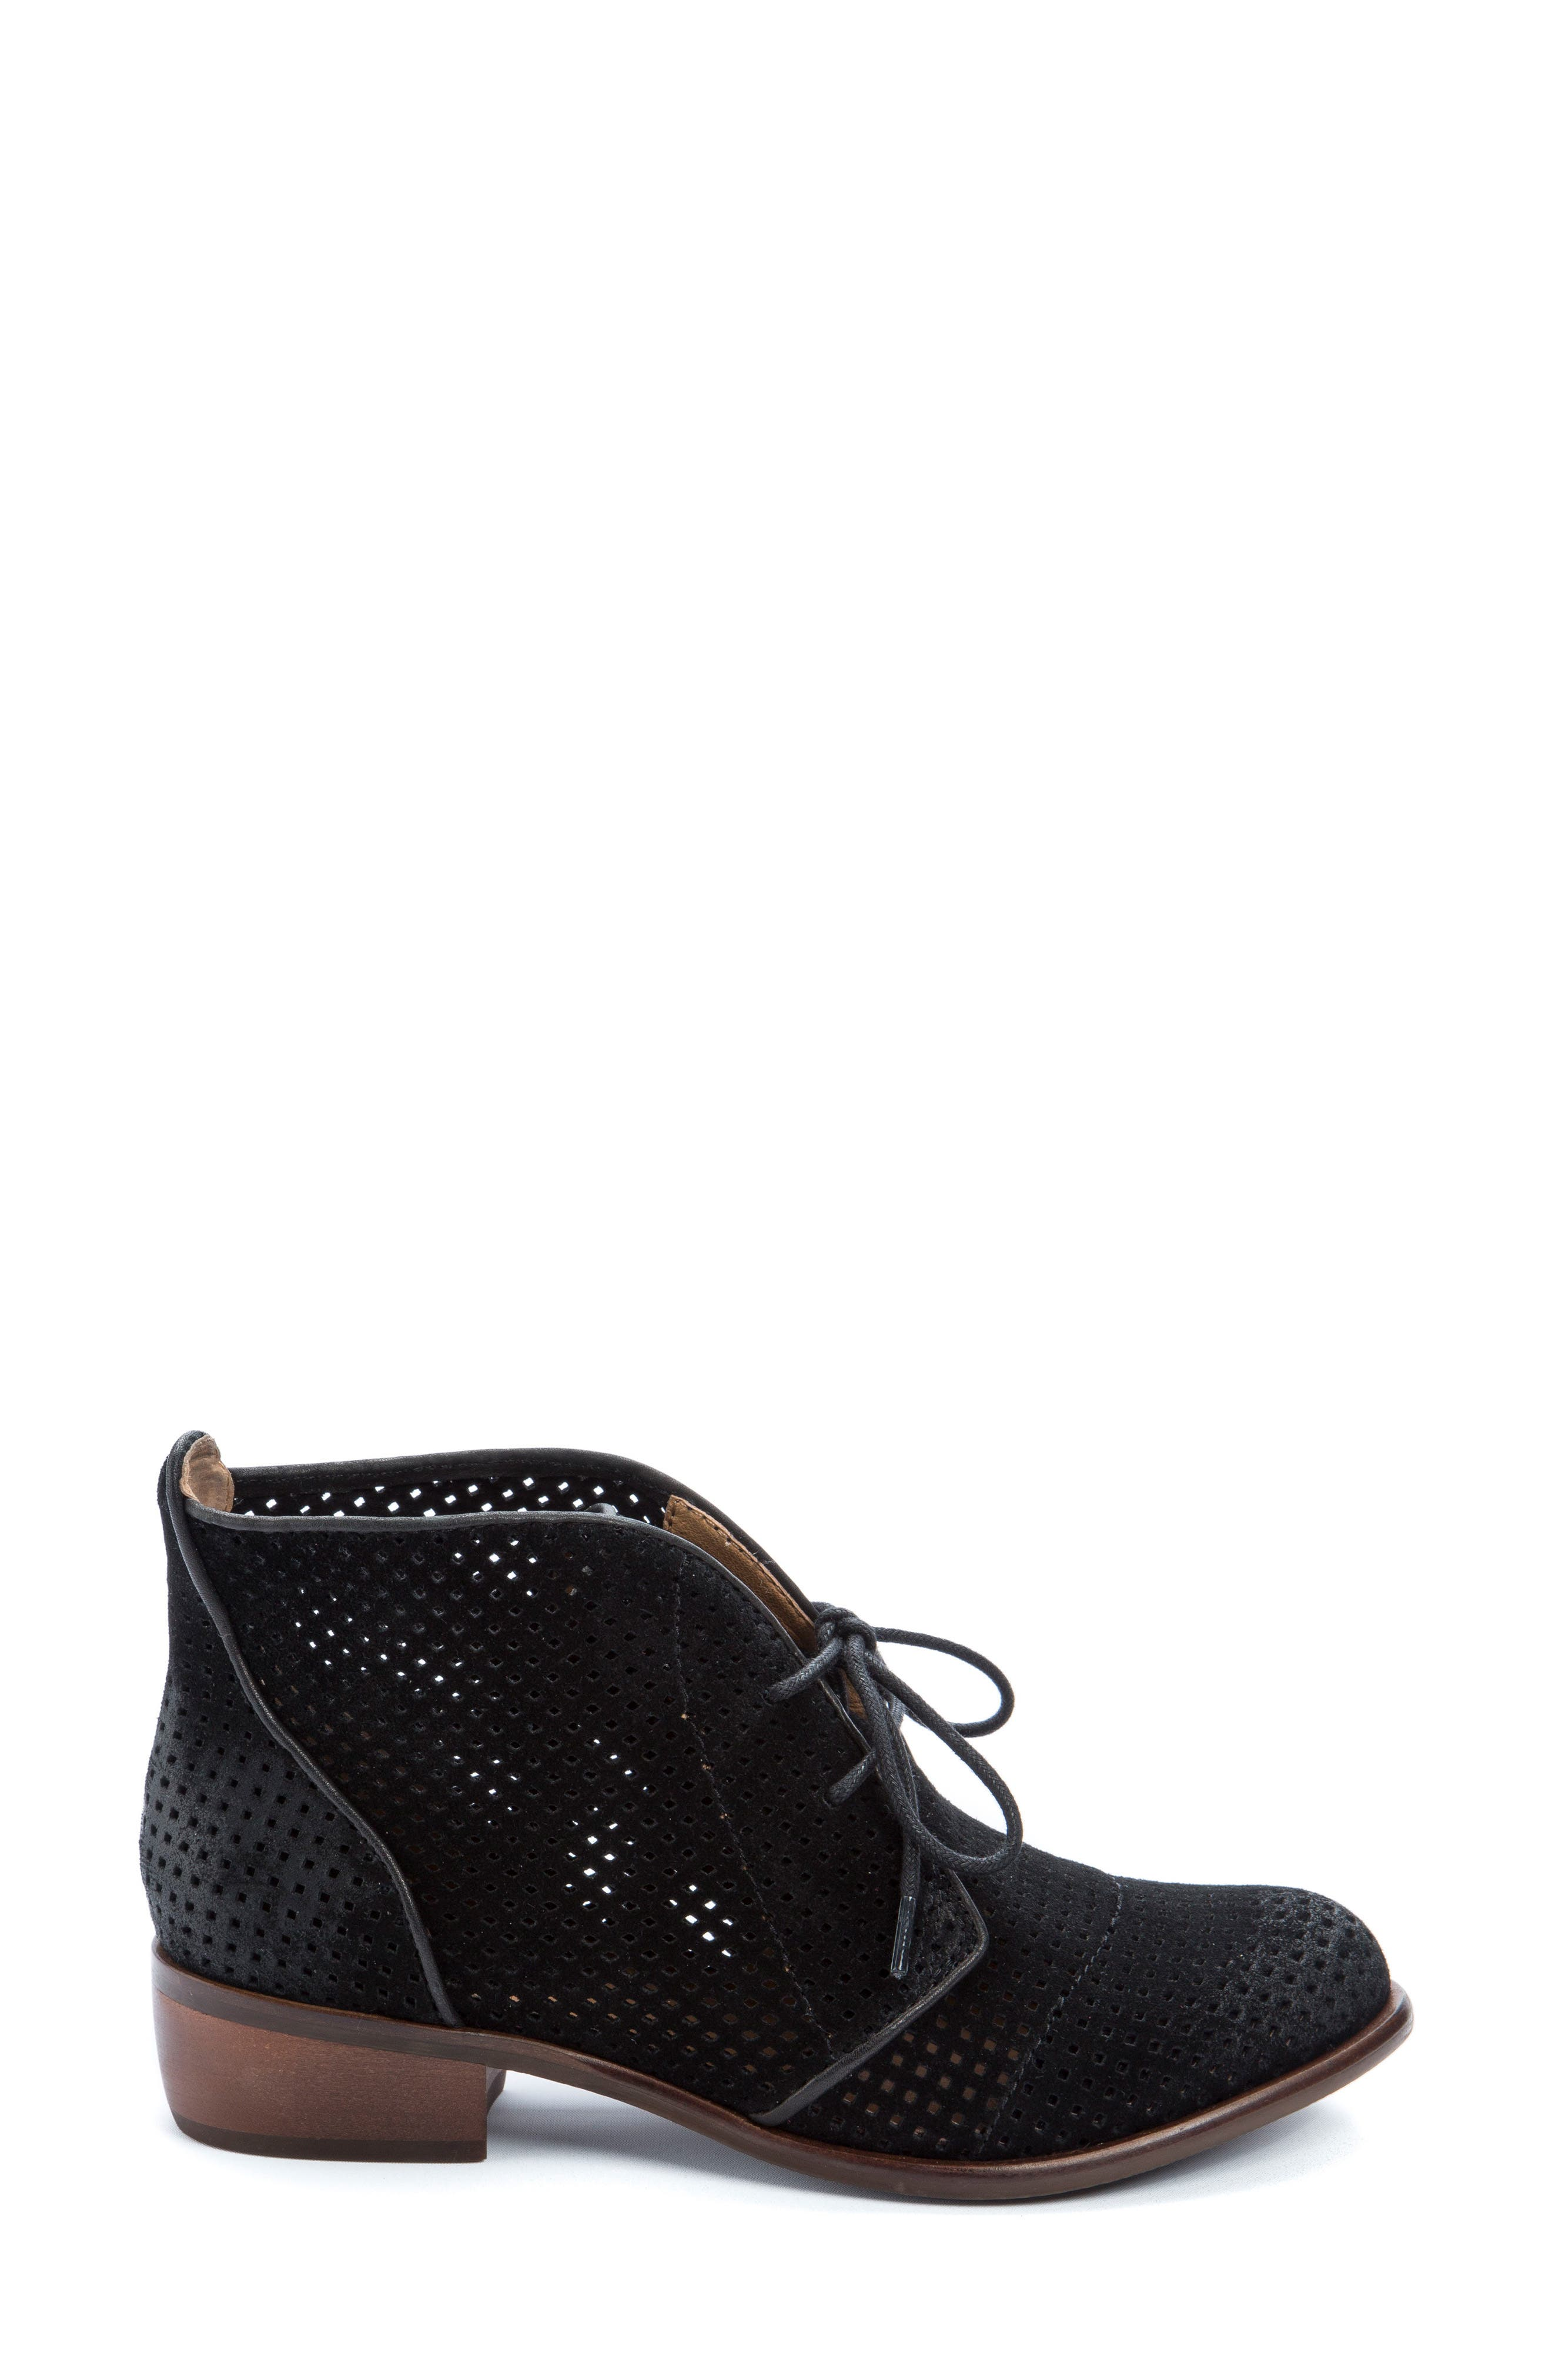 Alternate Image 3  - Latigo Isaac Lace-Up Bootie (Women)